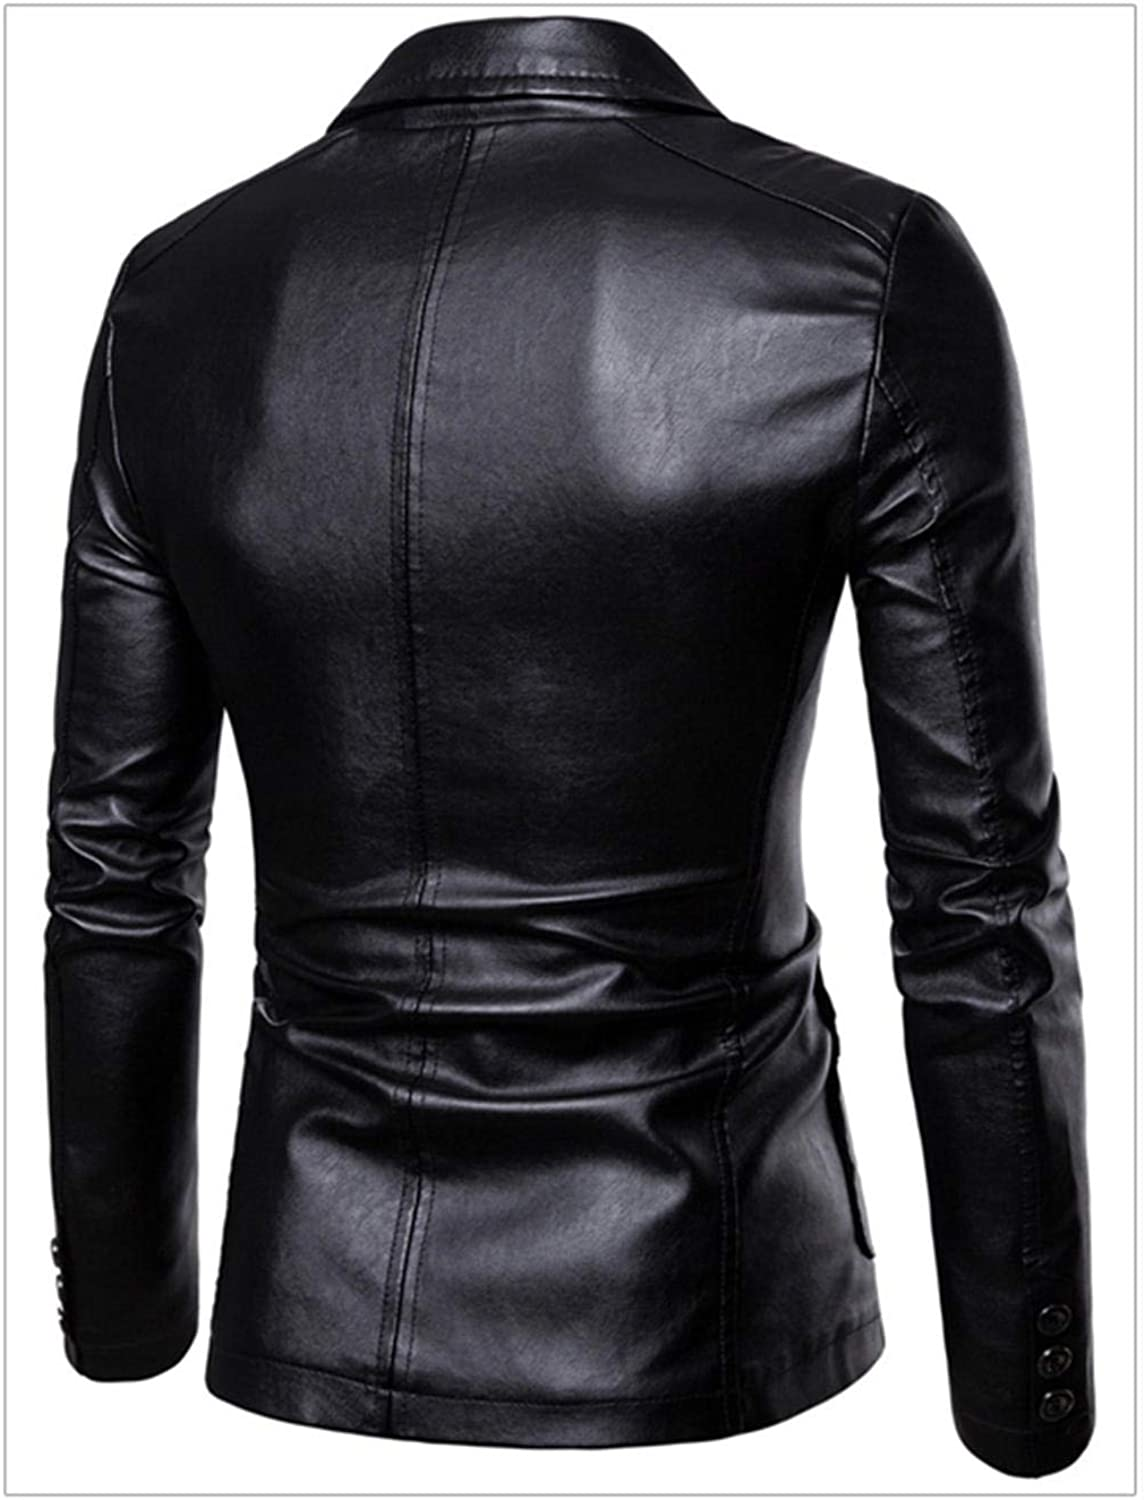 Soluo Leather Blazers for Men - Mens Real Lambskin Leather Jackets & Sport Coats Outerwear Overcoat (Black,3X-Large)